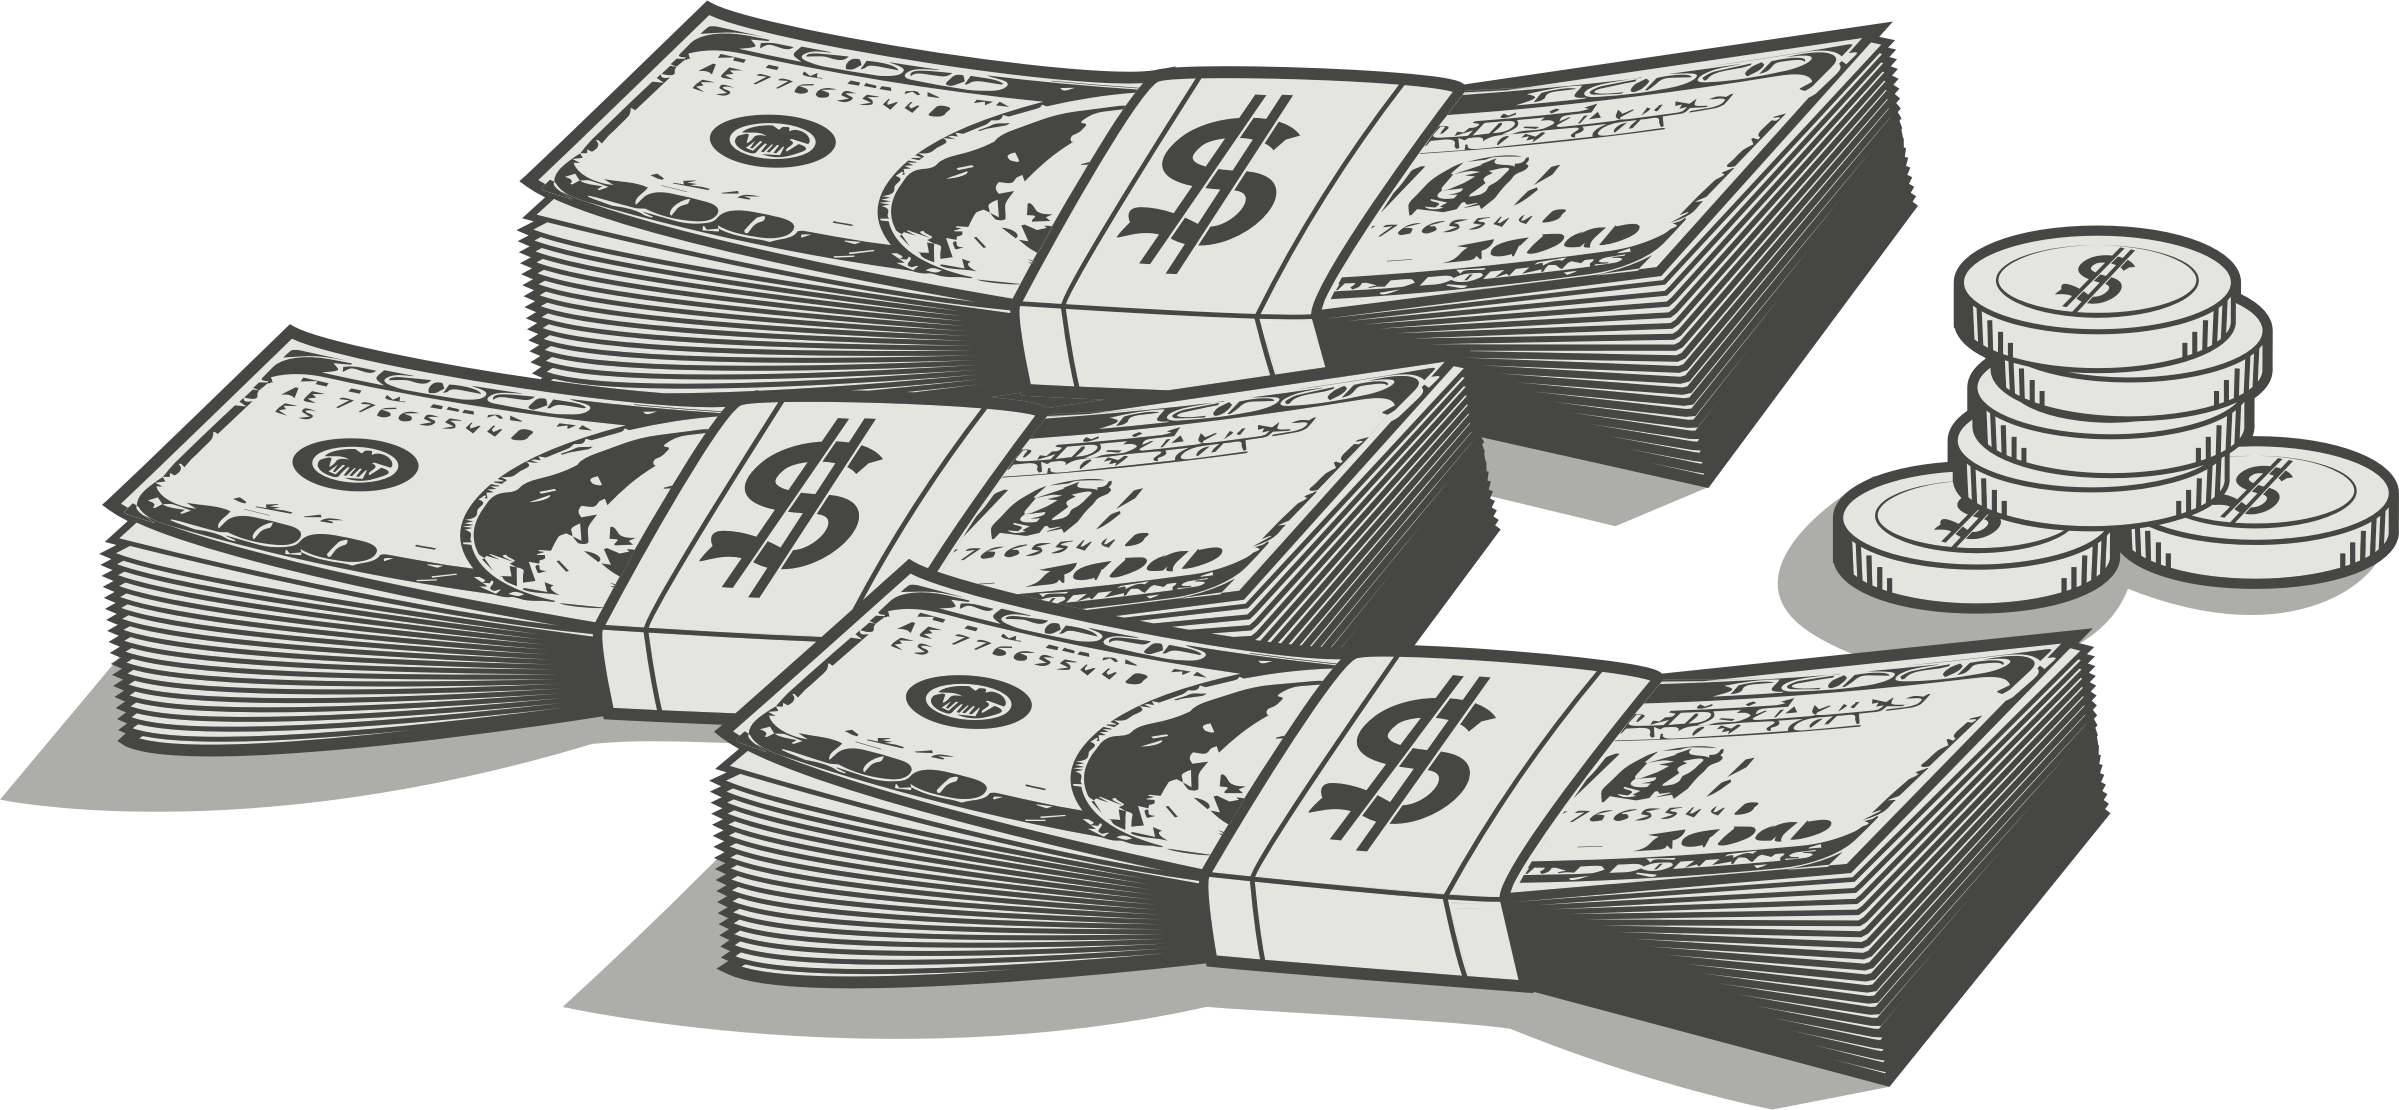 Money bills clipart black and white png black and white stock Clipart - Money png black and white stock